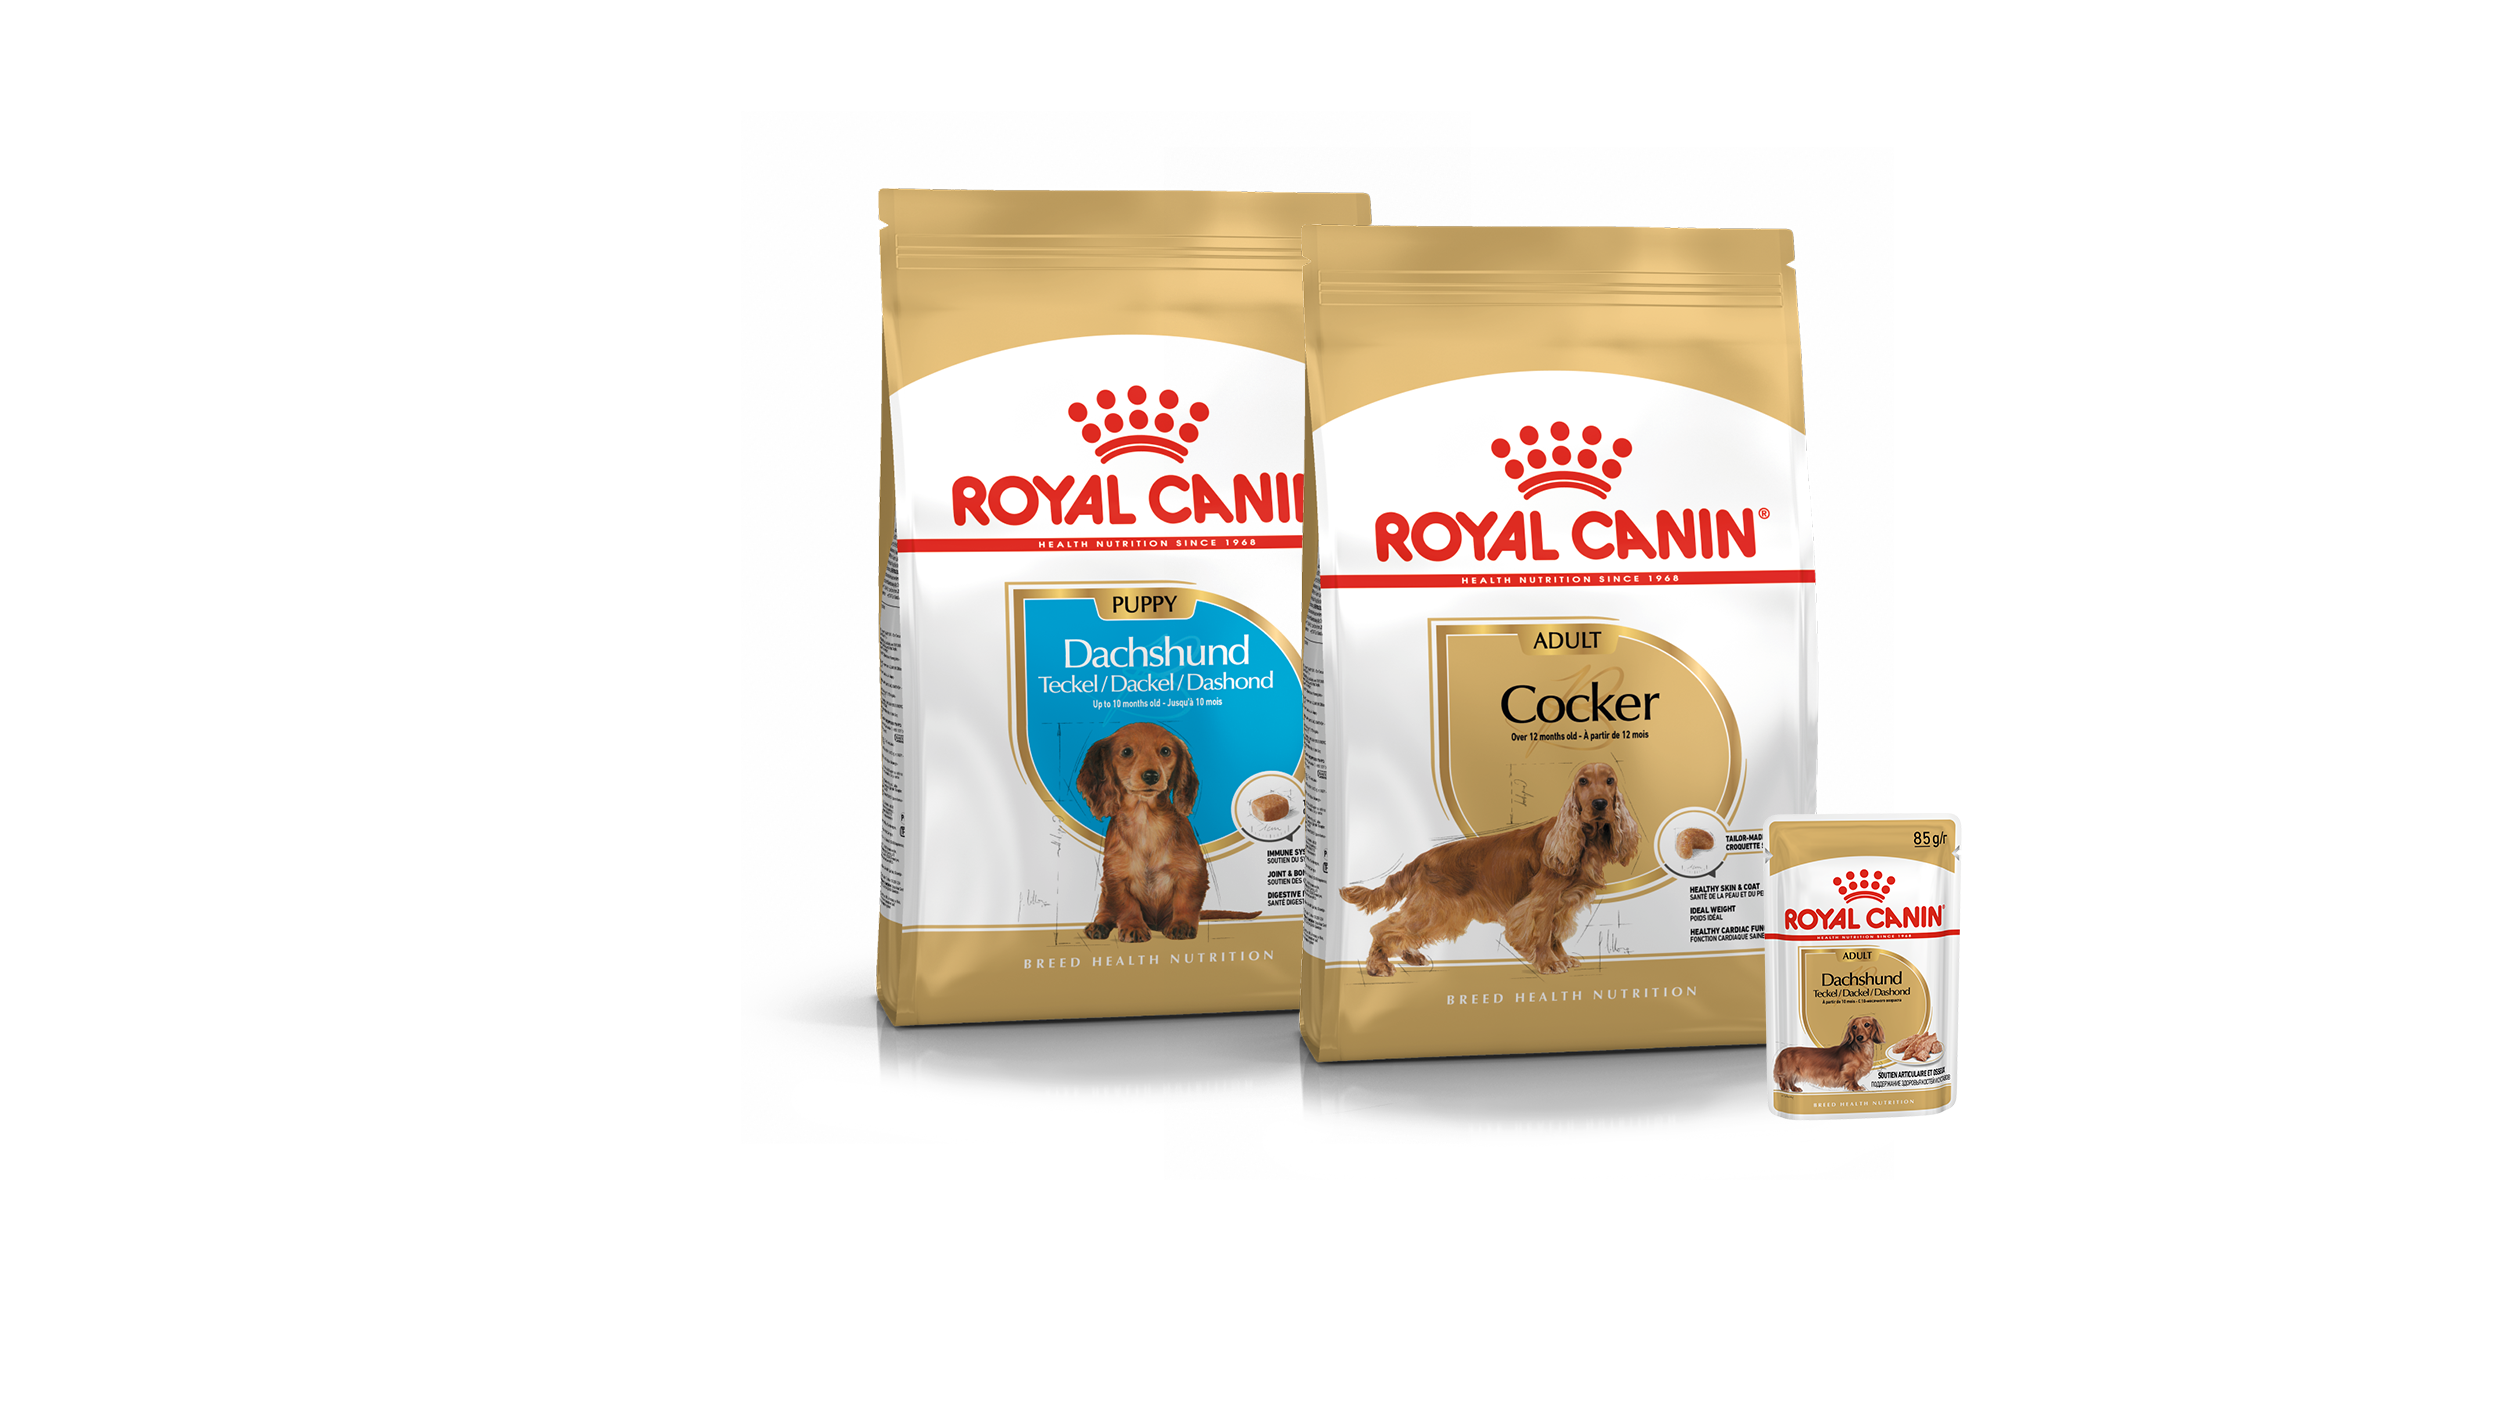 Dog & Puppy Food - Royal Canin